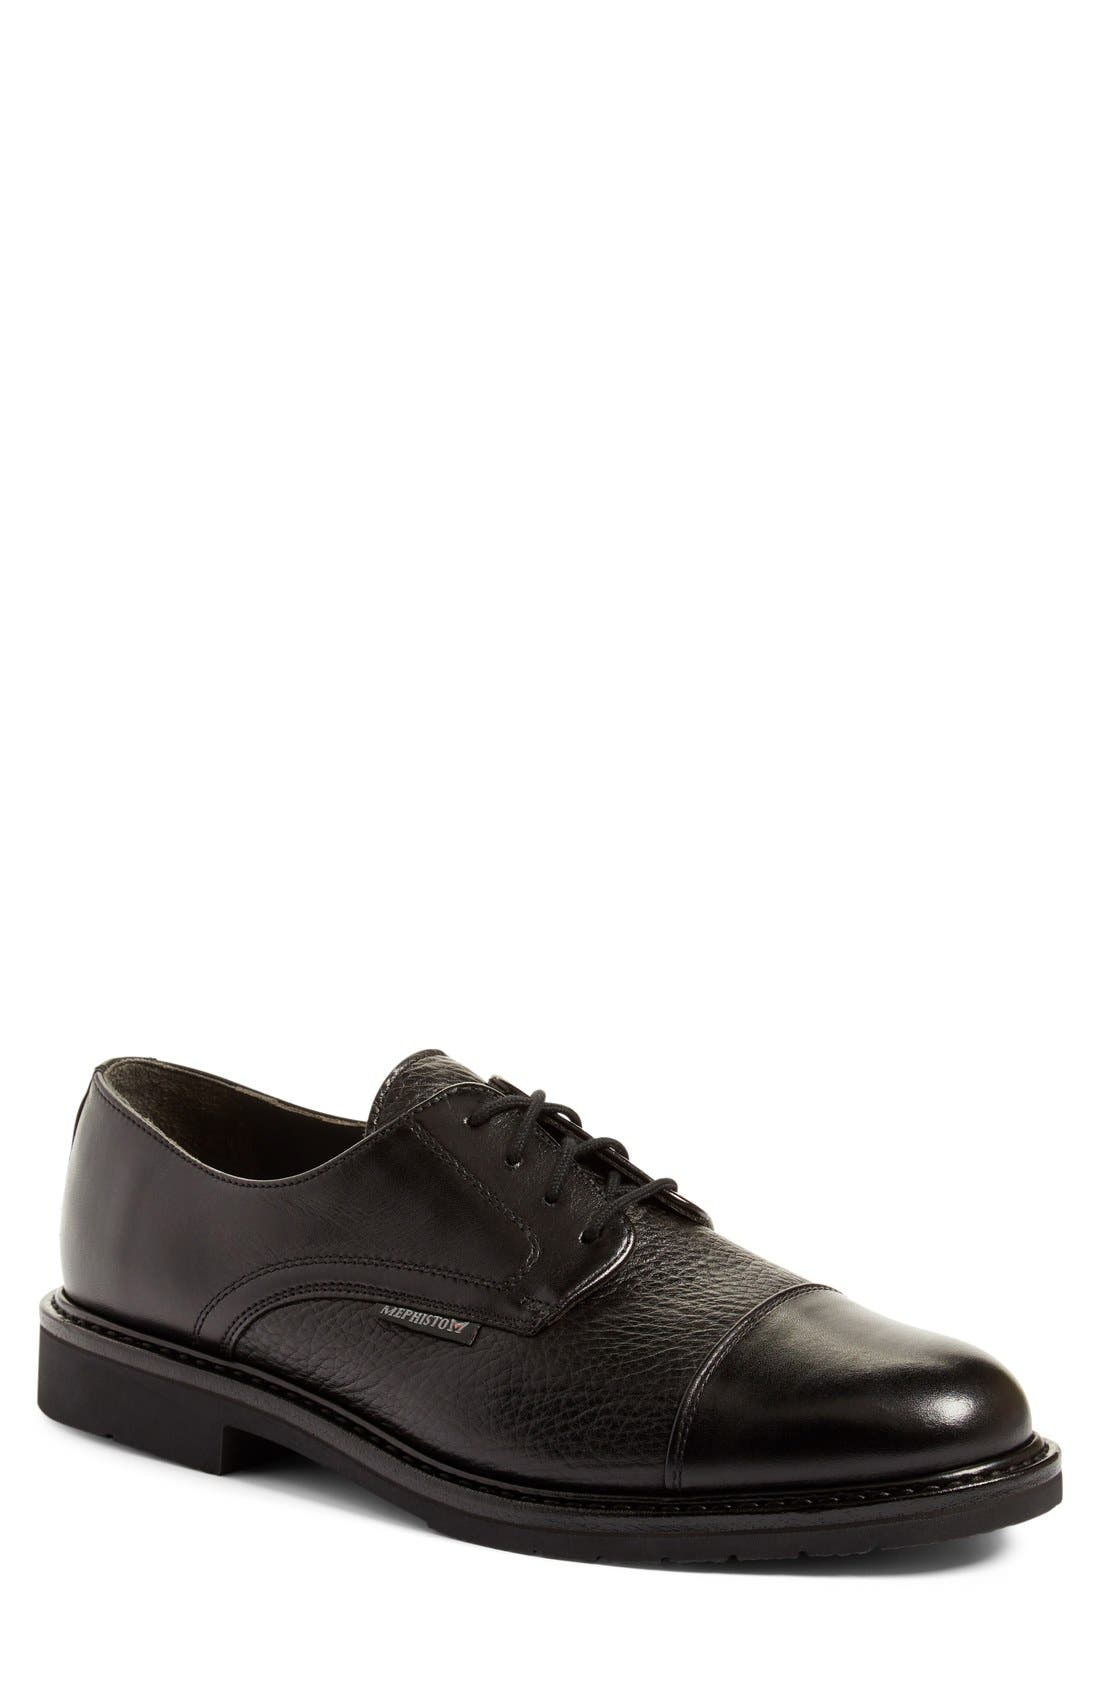 MEPHISTO 'Melchior' Cap Toe Derby, Main, color, BLACK LEATHER